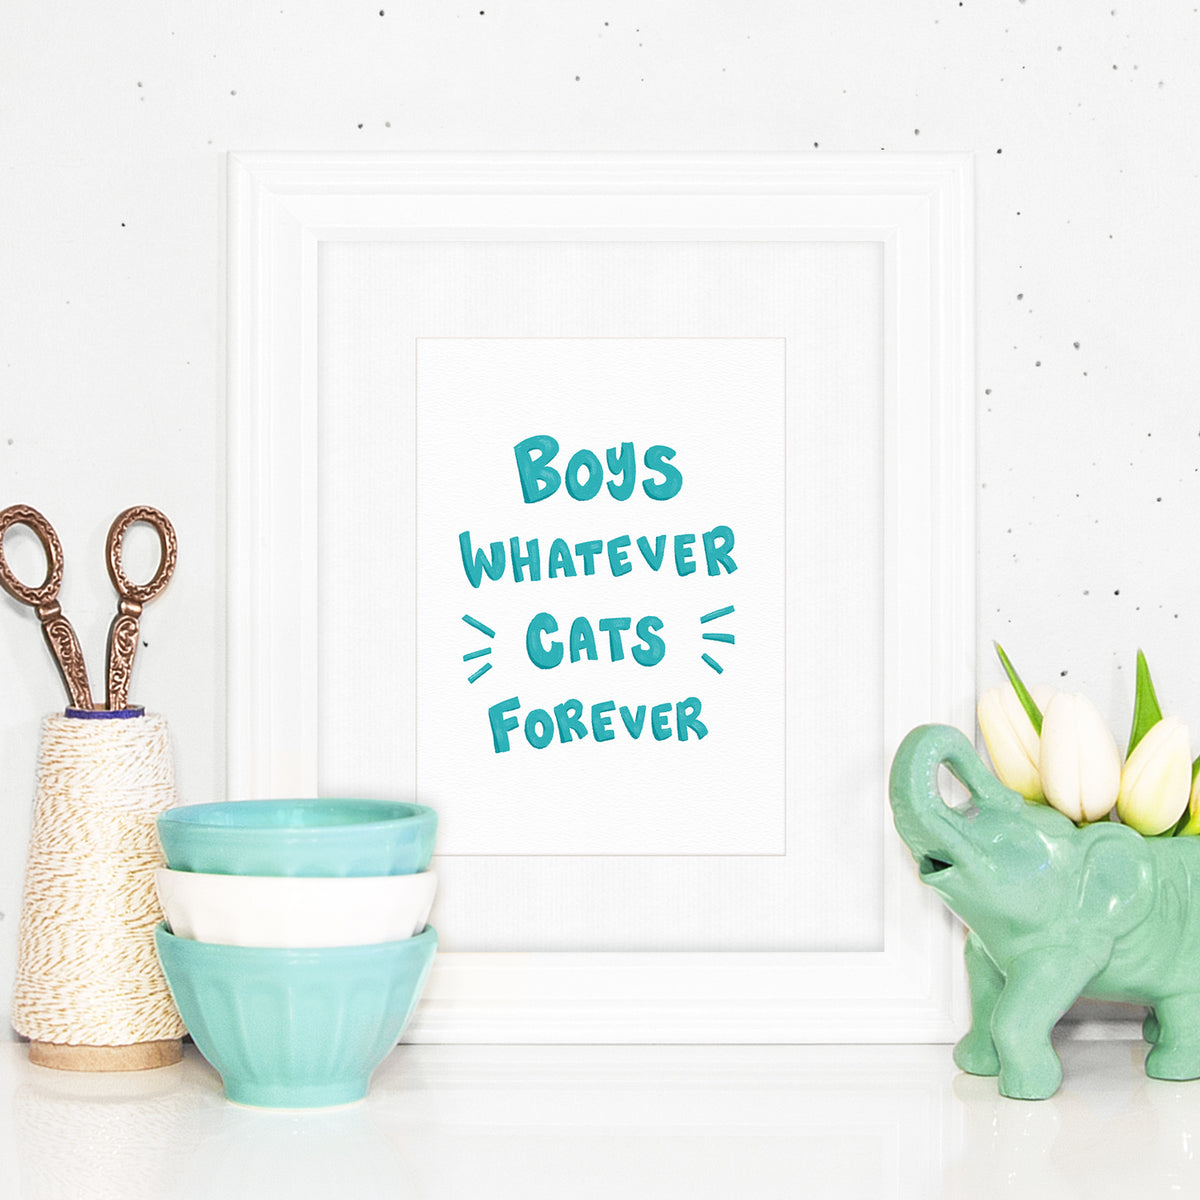 Boys Whatever Cats Forever ~ Typographic art print by My Cat Is People